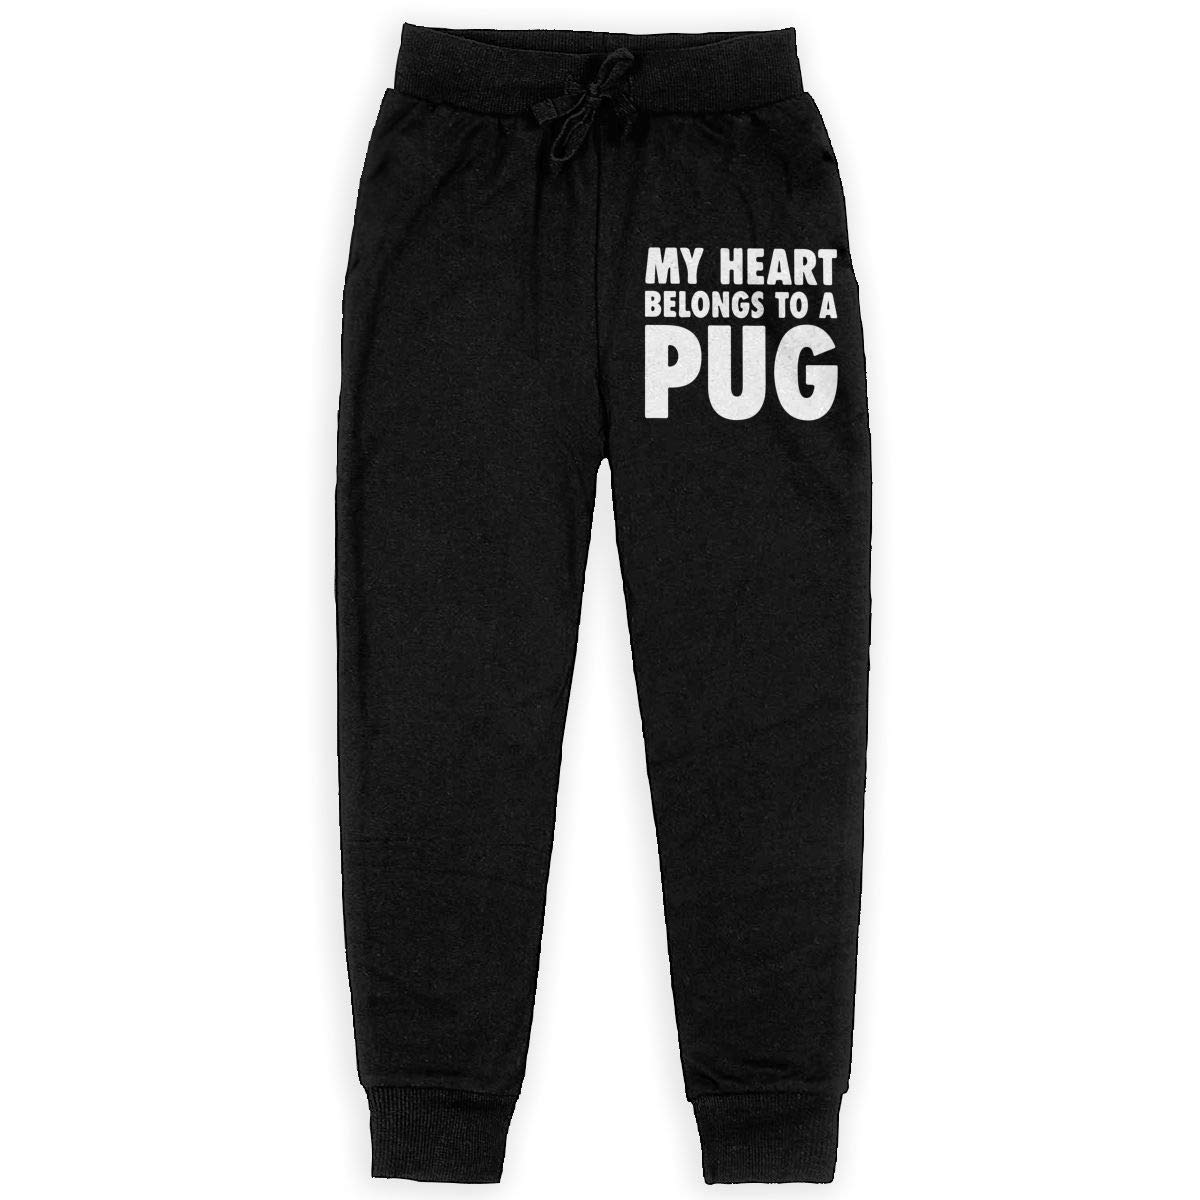 WYZVK22 My Heart Belongs to A Pug-1 Soft//Cozy Sweatpants Girls Trousers Girls for Teenager Boys